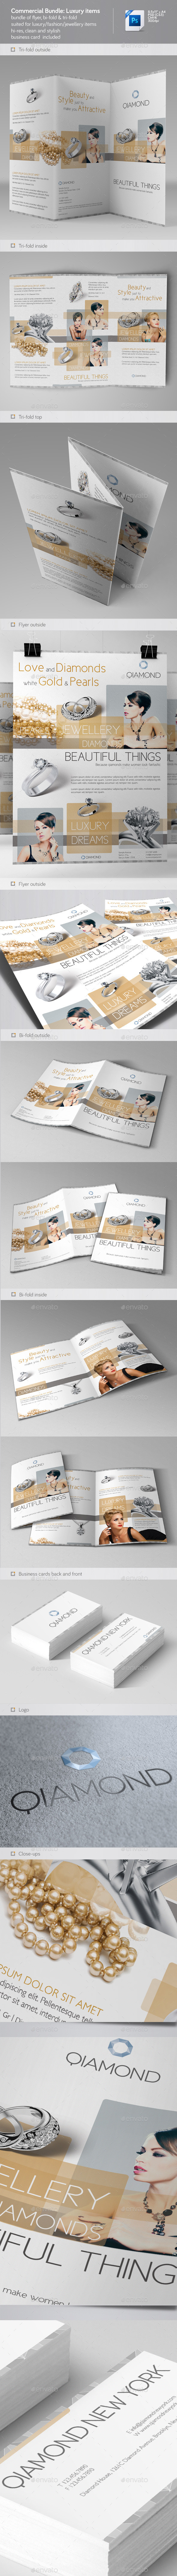 GraphicRiver Commercial Flyer Bundle 1 Luxury Items 10445678